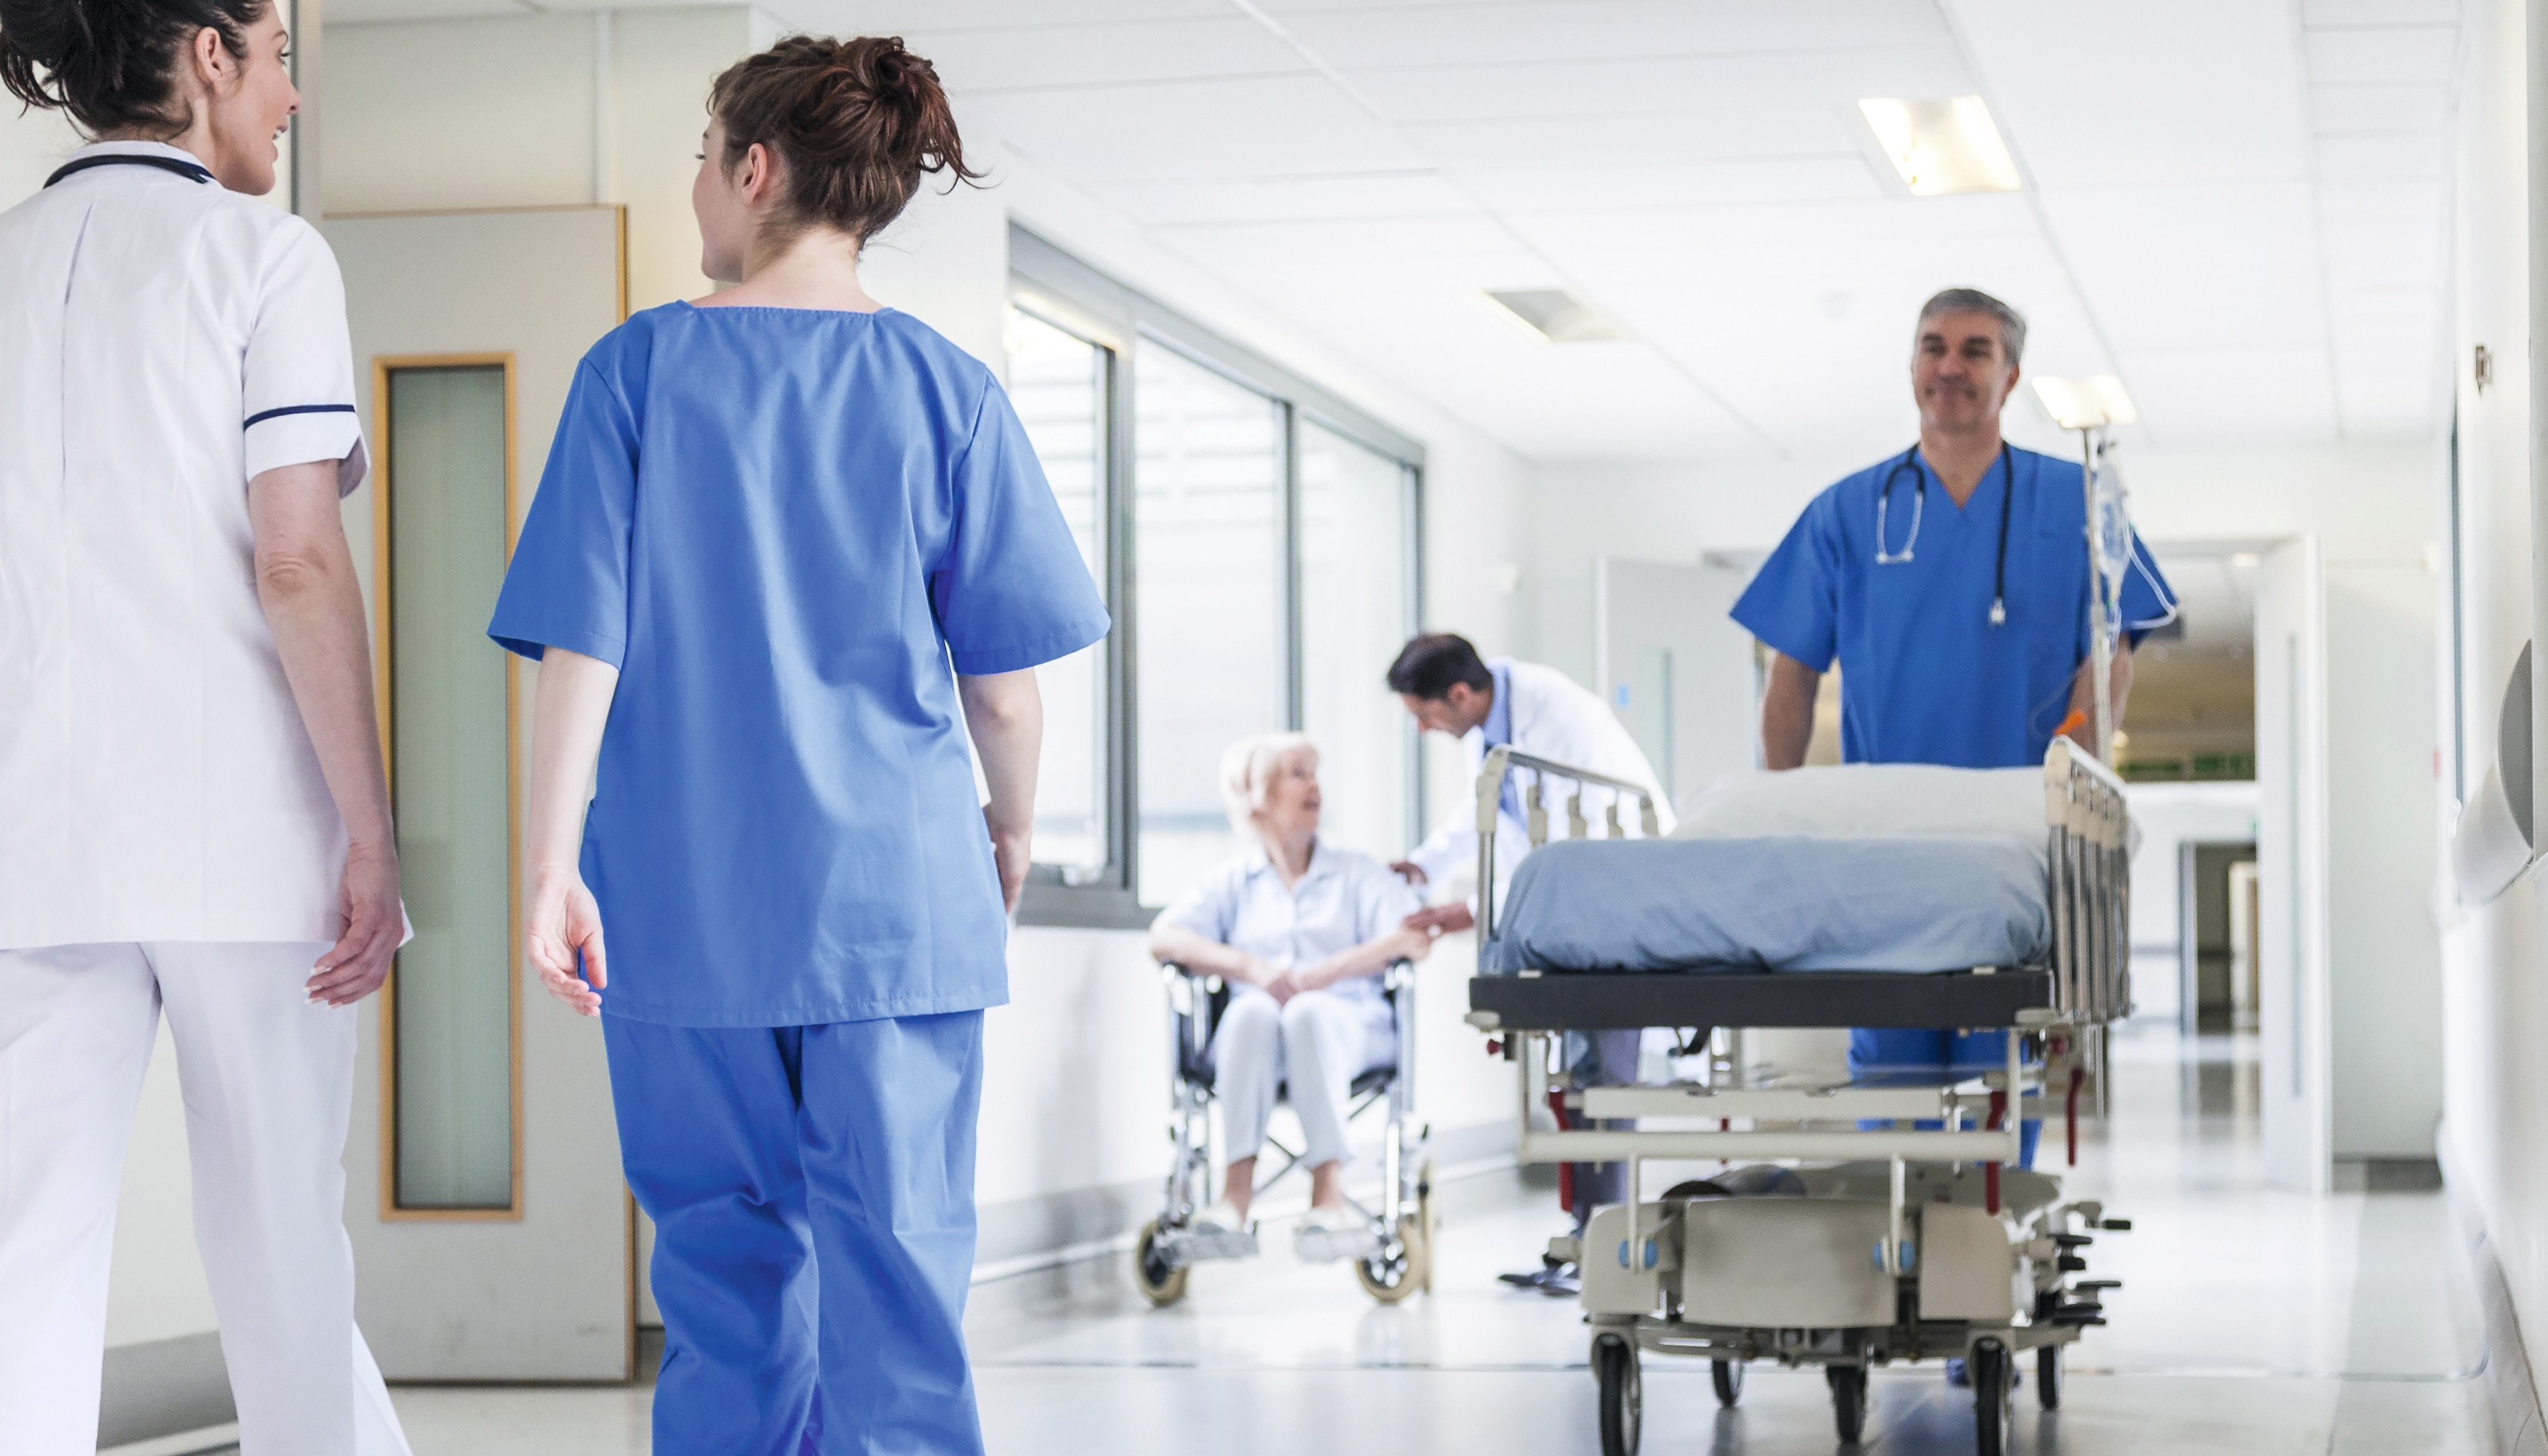 Fire protection and airflow control to help minimize risk in healthcare facilities